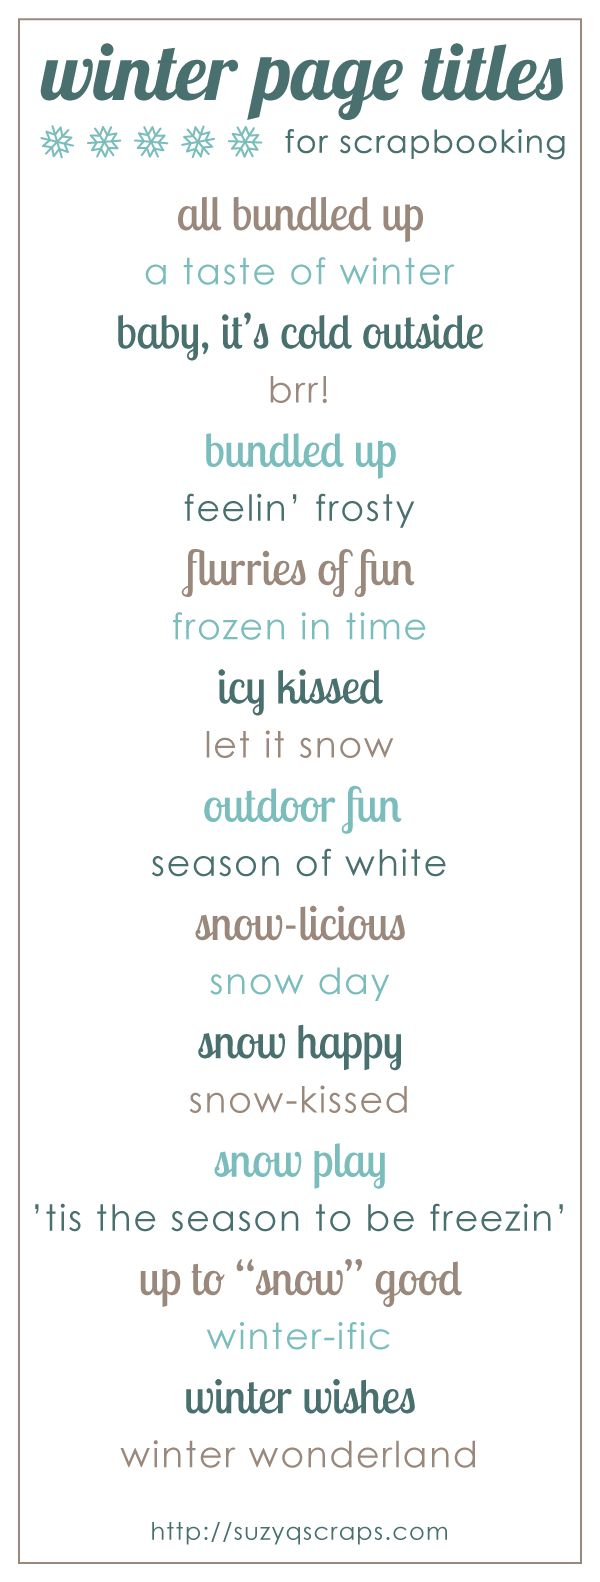 Winter scrapbook page titles - would work for treasury titles or blog titles as well.